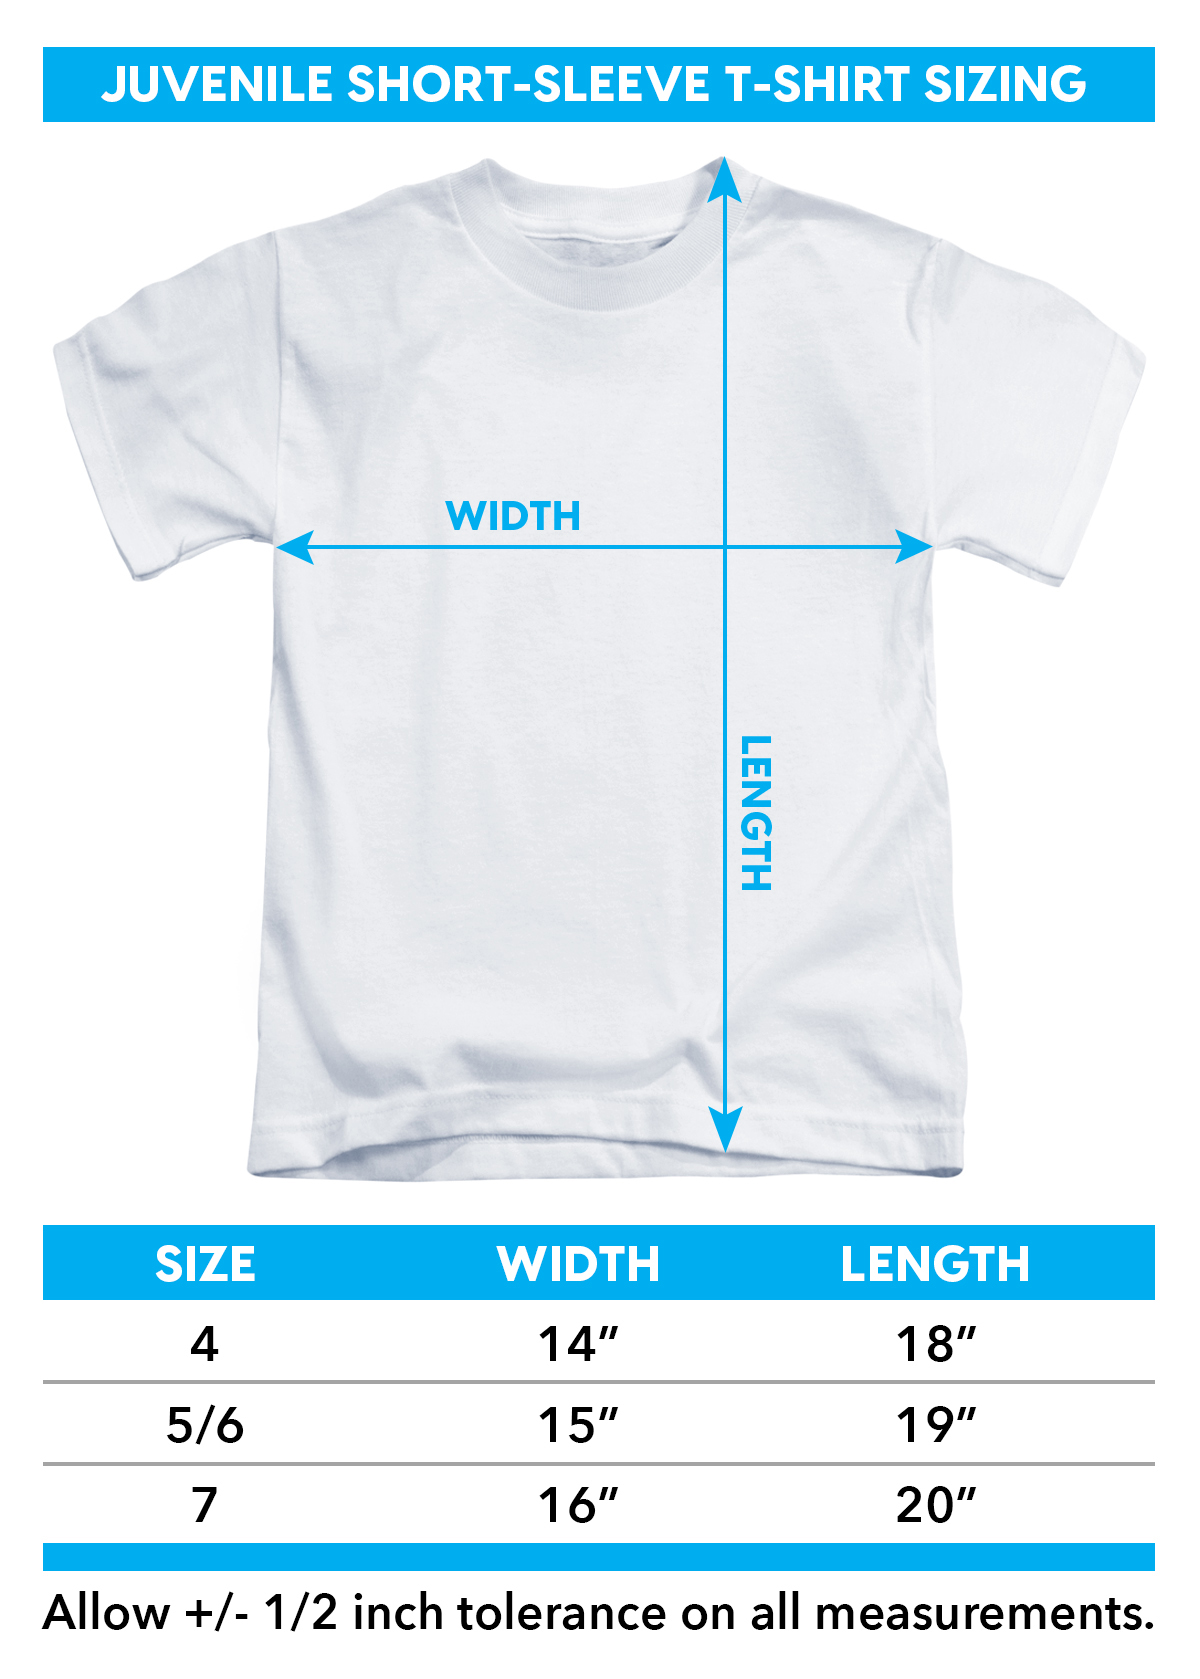 Sizing chart in inches for Wargames Kids T-Shirt - Shall We TRV-MGM304-KT